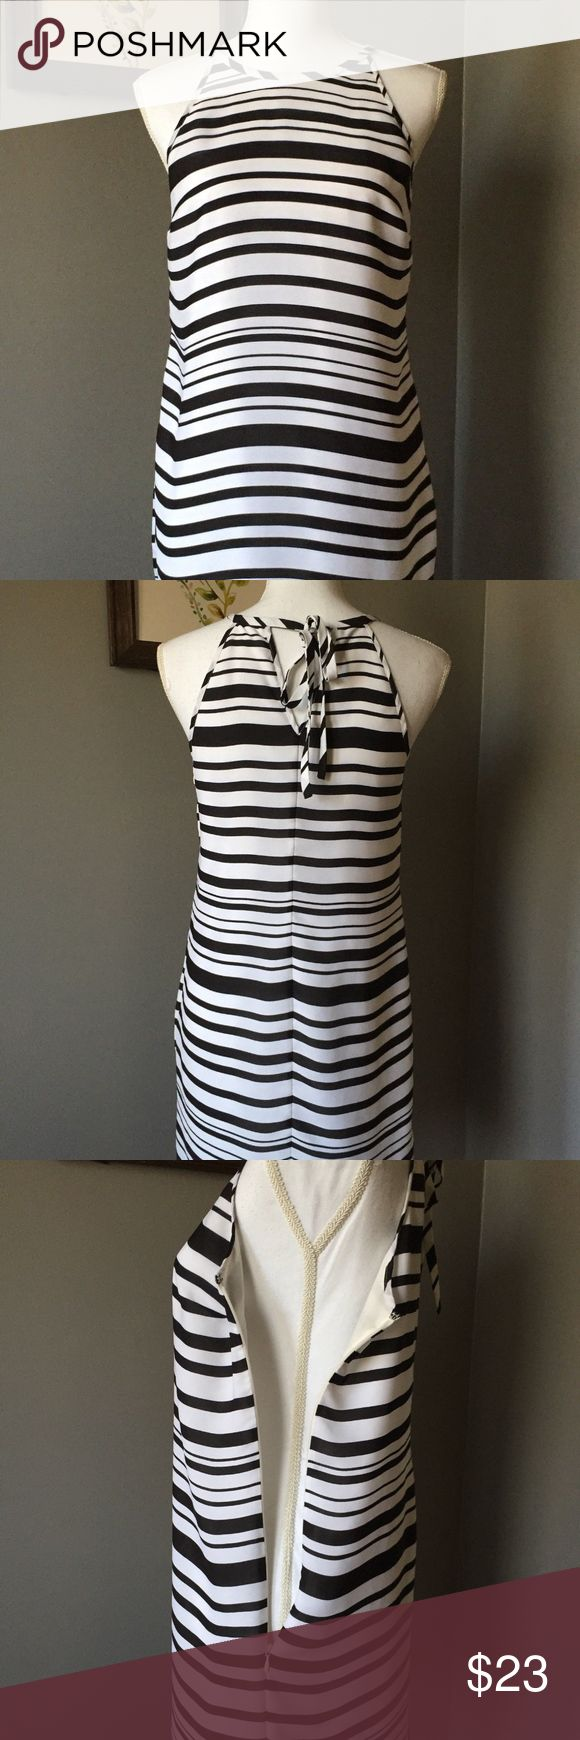 """Banana Republic 4 Black White Stripe Halter Dress Women's size 4 Banana Republic shift dress. Halter style neckline with a tie in the back. 100% Polyester. Black and white stripes. Lining is a cream color. Gently used, minimal signs of wear.   Approximate measurements (laid flat):  Armpit to armpit: 17"""" Length: 34"""" Banana Republic Dresses"""